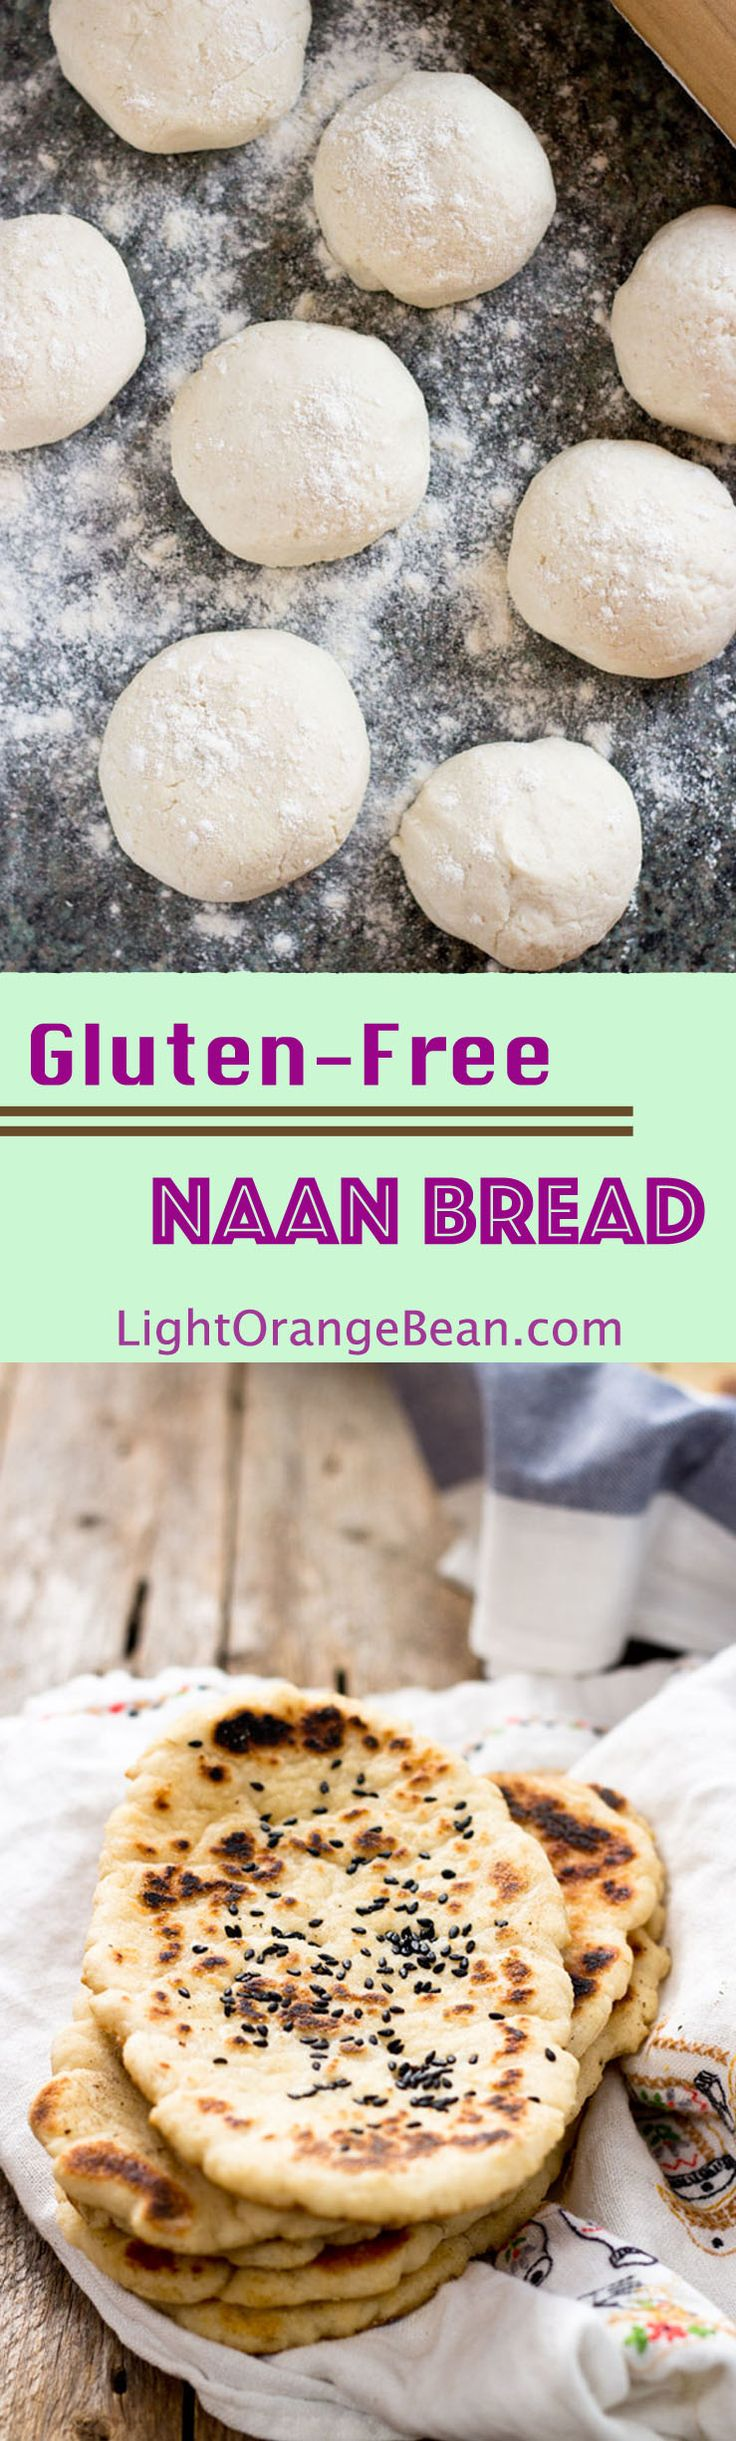 This pillowy gluten-free soft naan is the best gf flatbread I've ever had.  You can use it to scoop other foods, such as sauce or dips, like you would do in an authentic Indian restaurant.